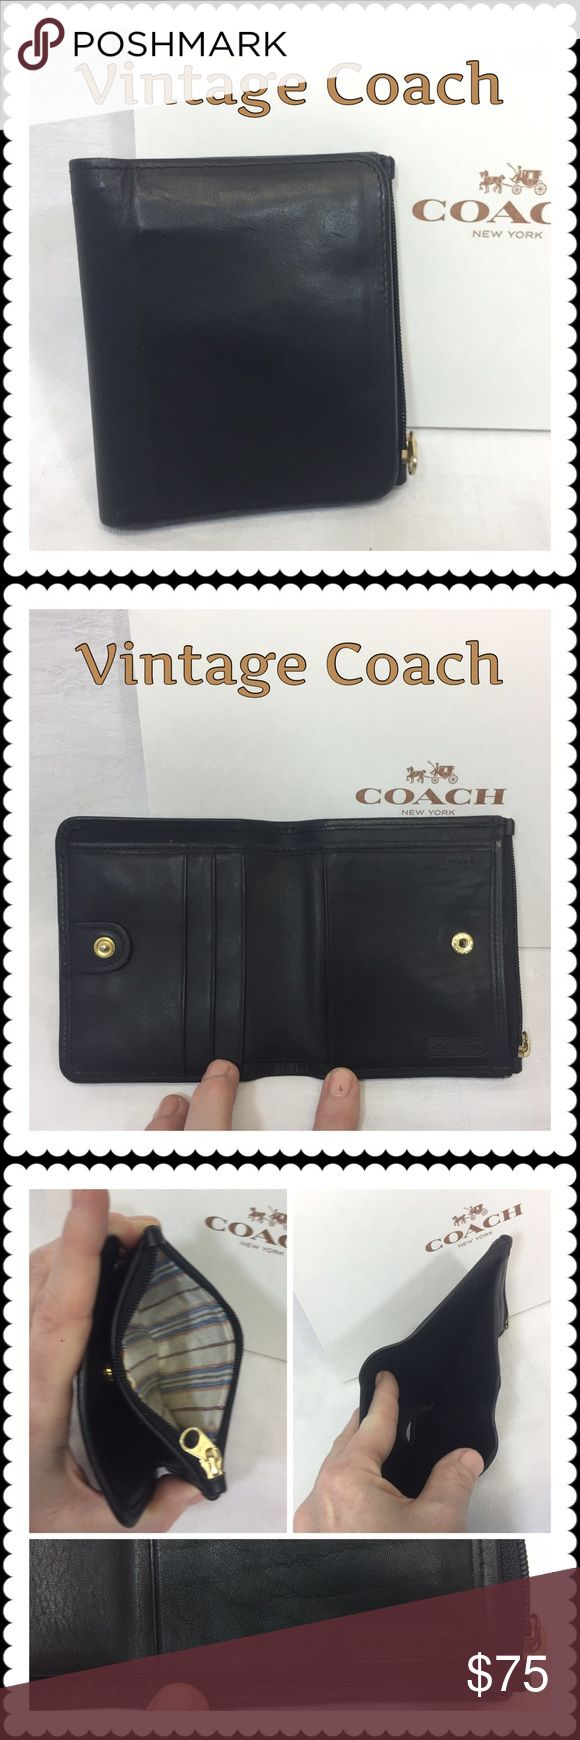 👜 Vintage Coach Leather Wallet 👜 Vintage Coach Leather Wallet 👜 A true classic, black leather, coin zip pouch, card slots and cash compartment. Snap closure. Vintage lining in excellent condition as is the Leather and all hardware. Authenticated at Coach Store in Mall of America, December 2016. Made in the late 70s. An excellent addition to any Coach combination. Asking price only receives authentic (if not original) Coach box. Coach Bags Wallets